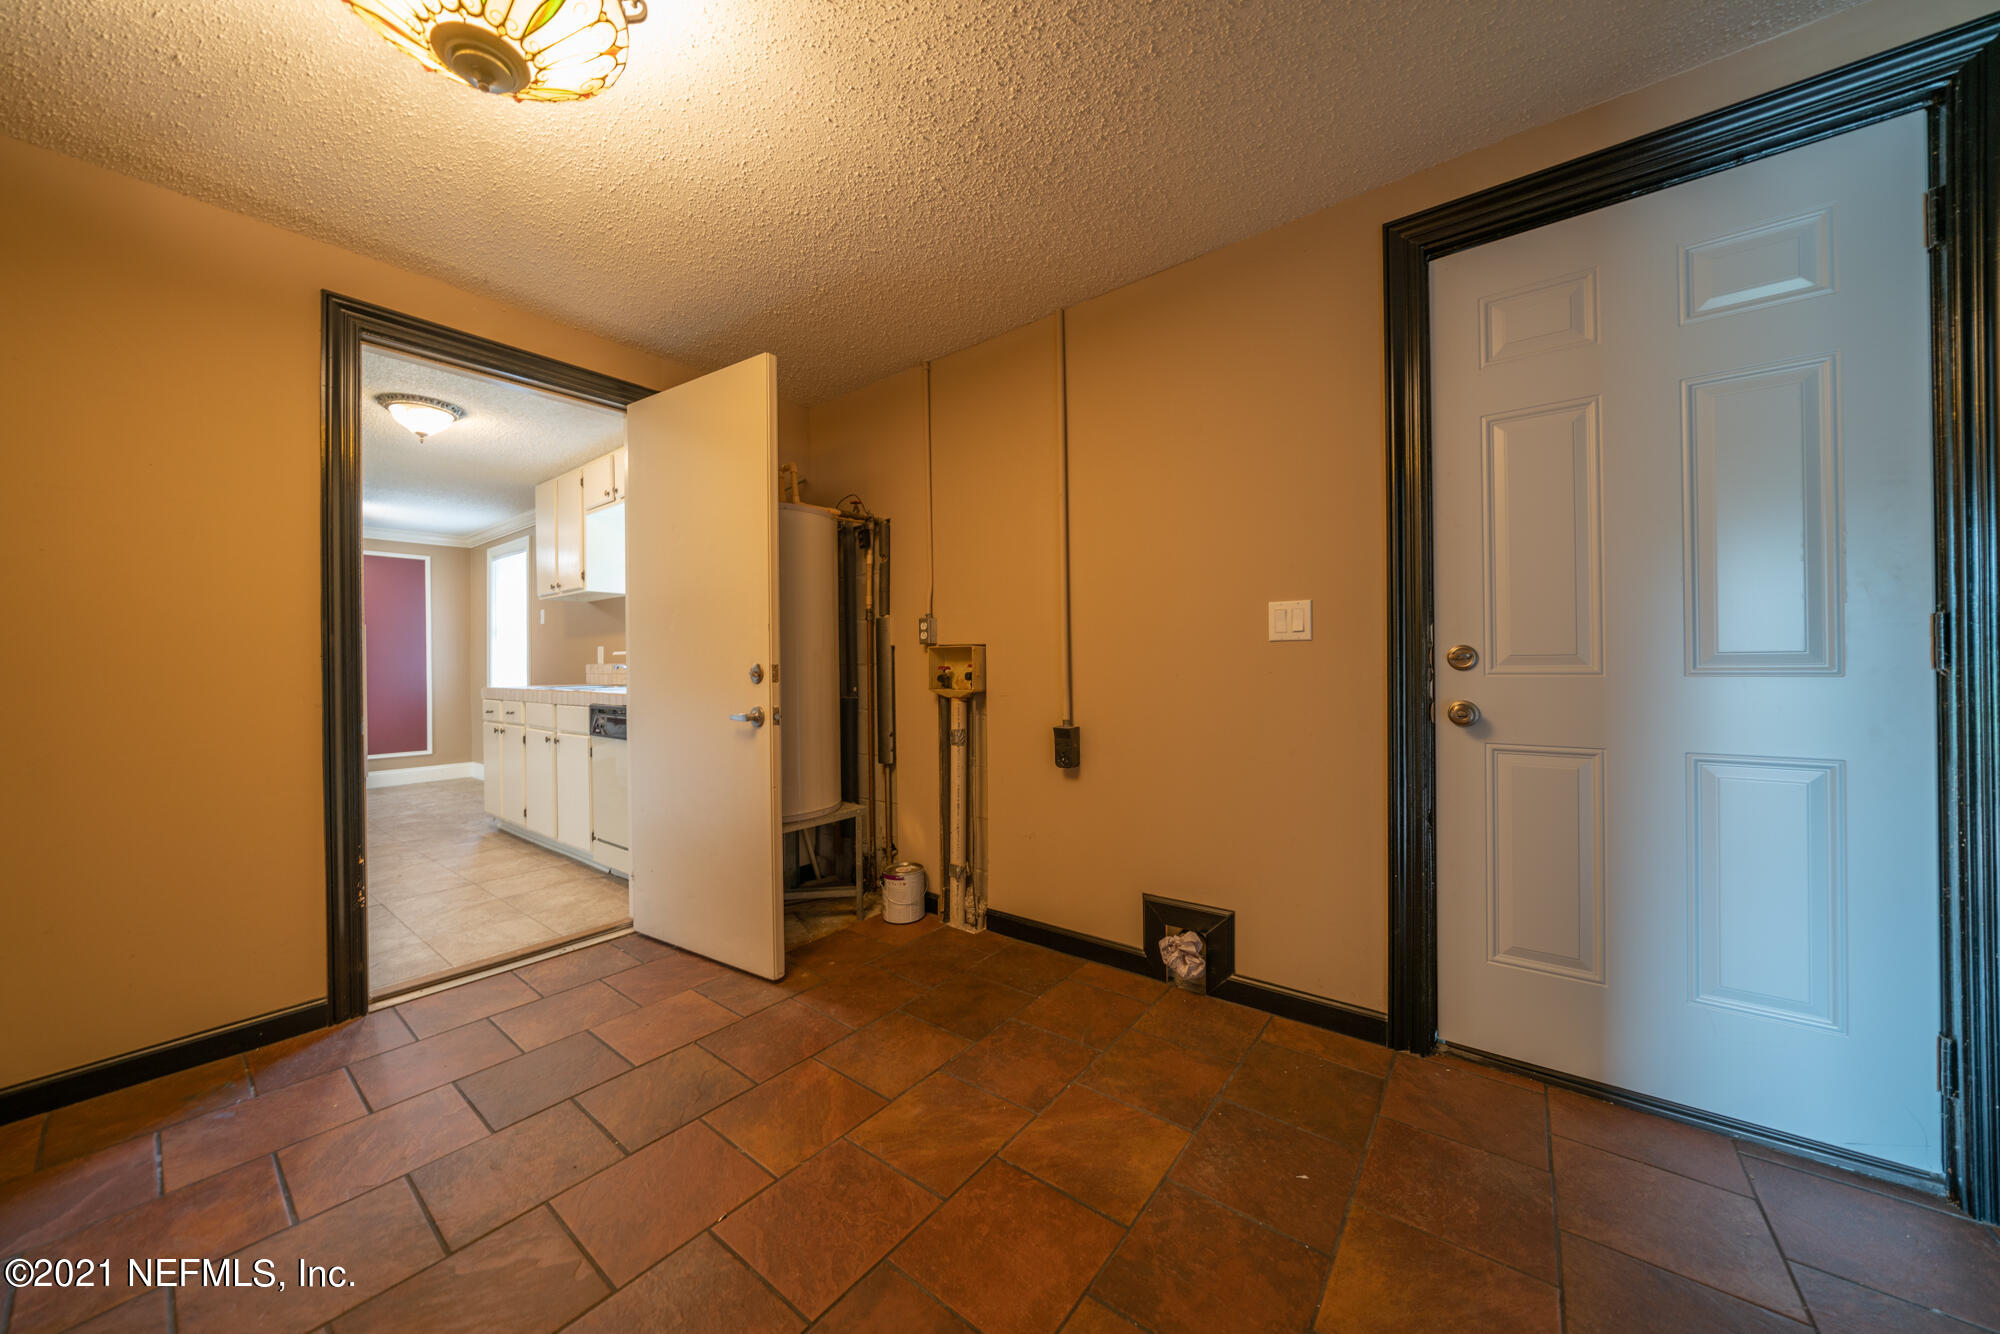 1309 YELLOWSTONE, ORANGE PARK, FLORIDA 32065, 3 Bedrooms Bedrooms, ,1 BathroomBathrooms,Residential,For sale,YELLOWSTONE,1131110